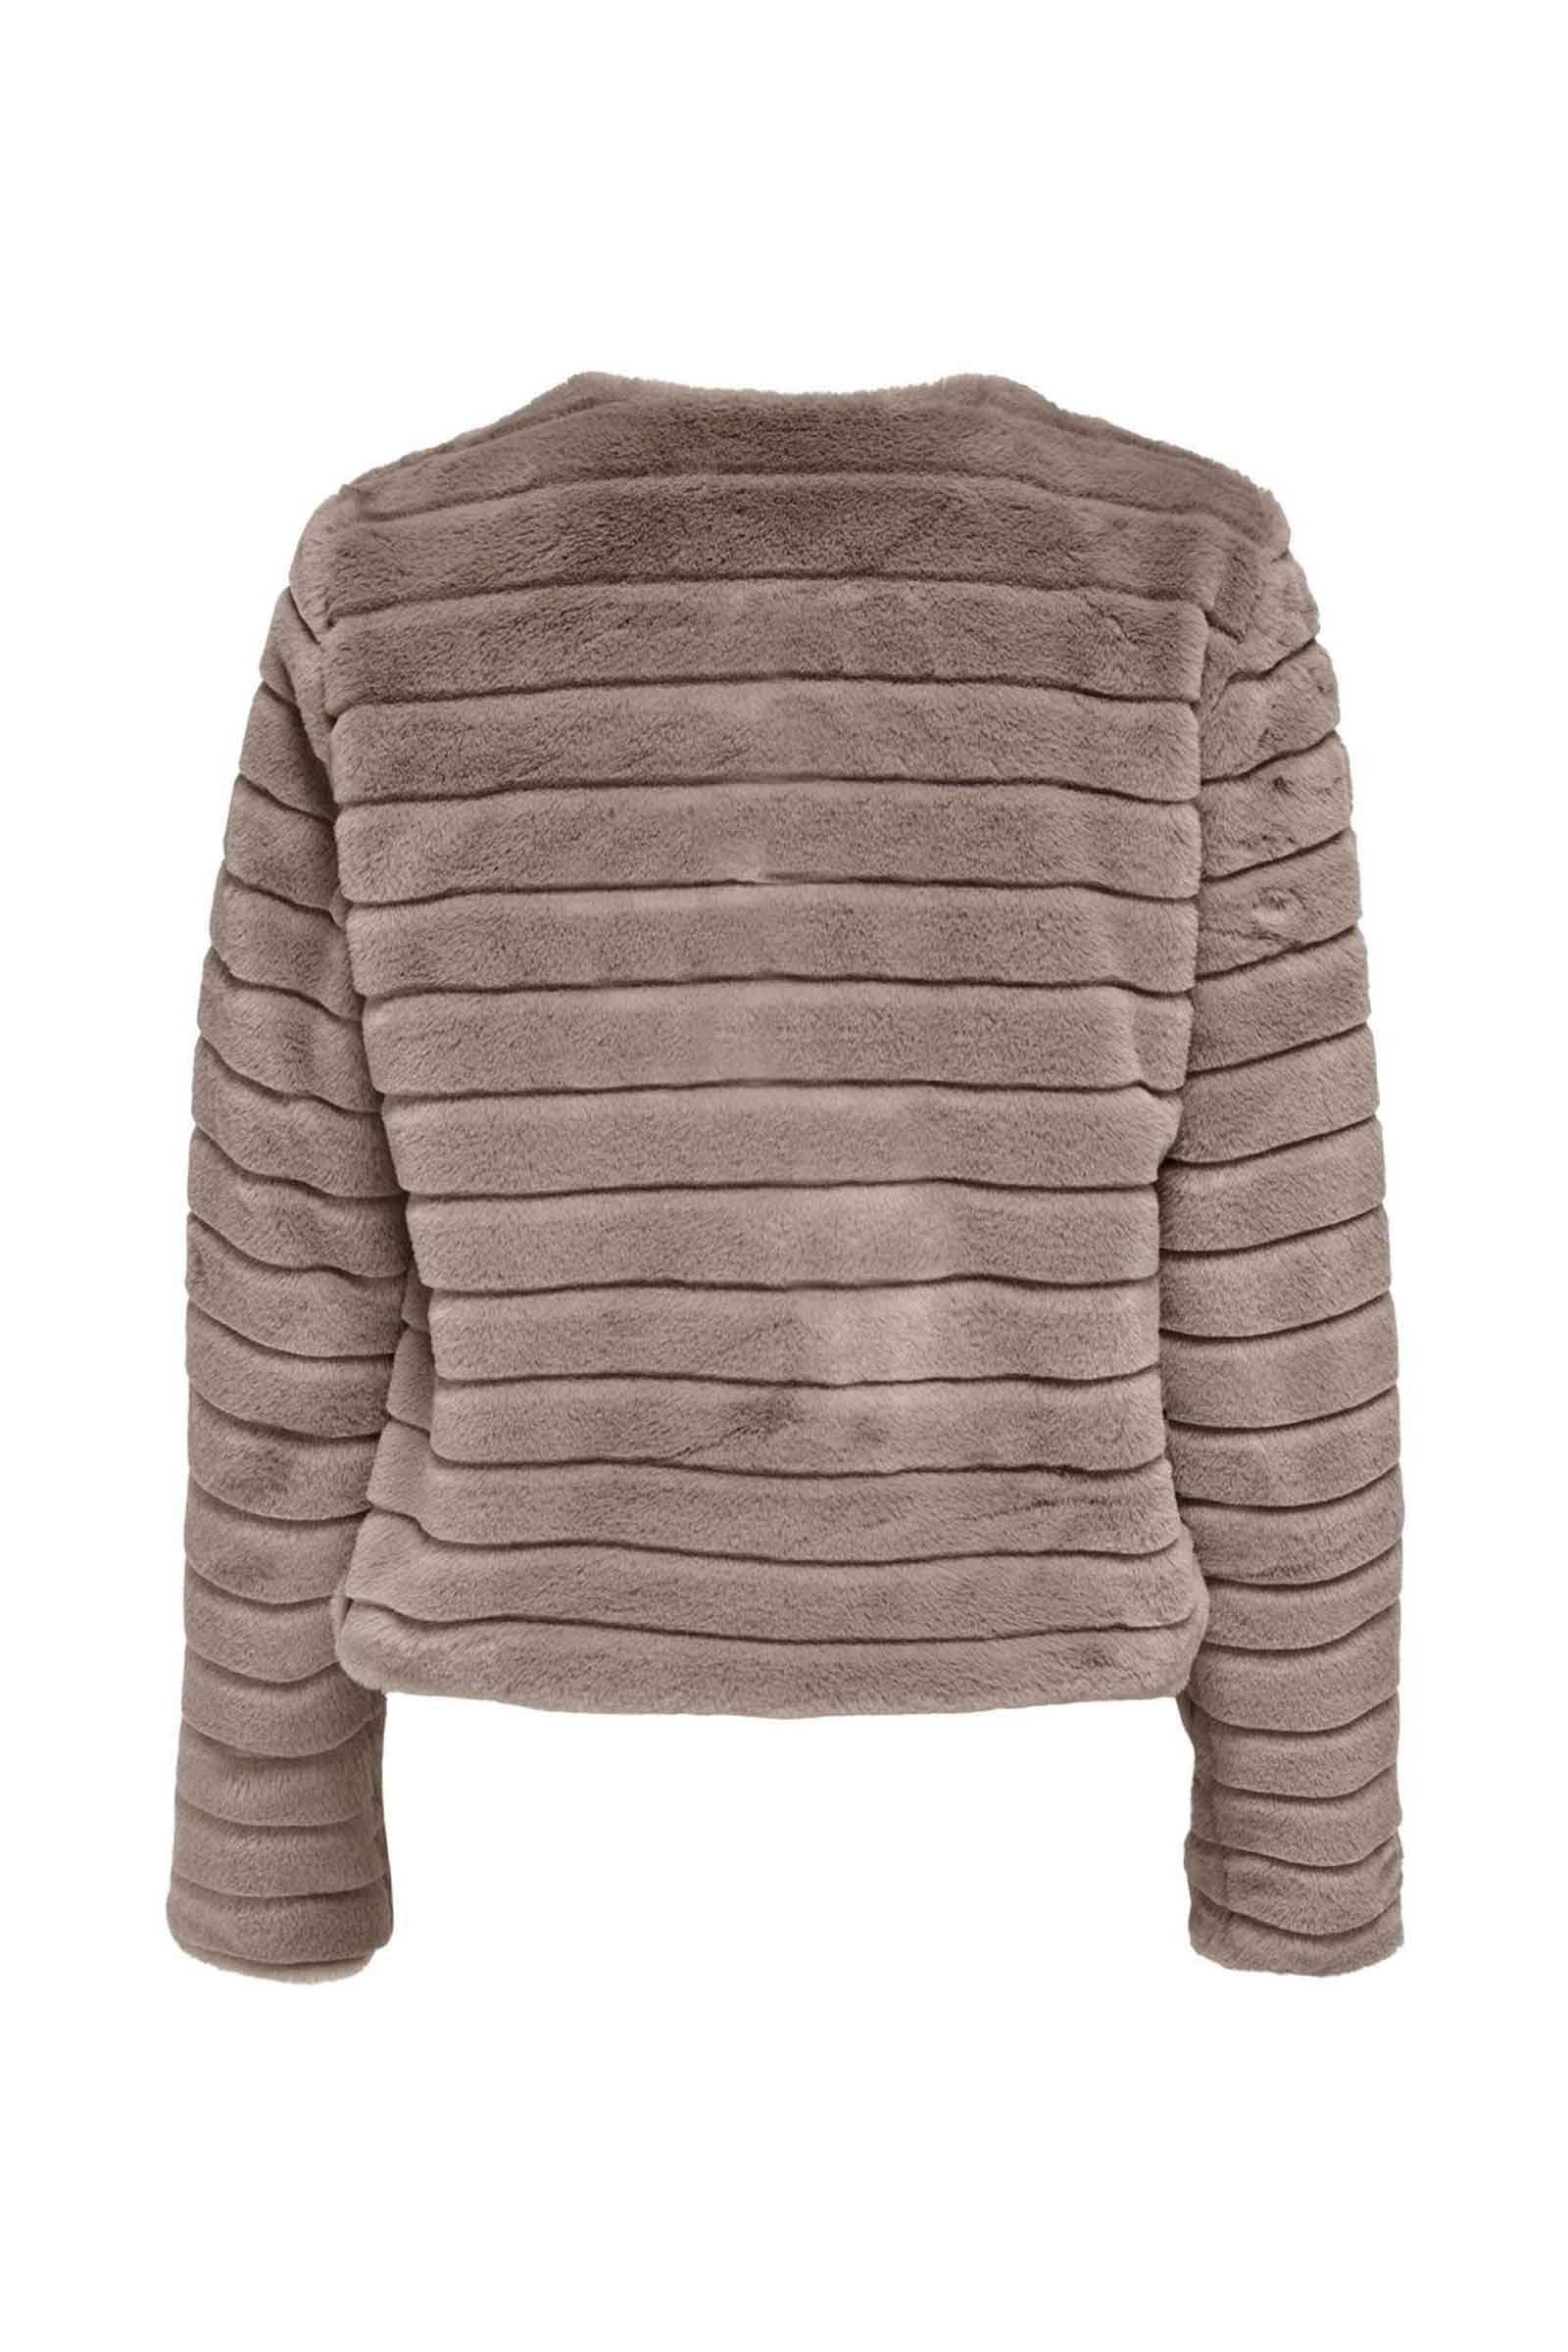 Woman Jacket Model LOUISE ONLY   Jacket   15228664Taupe Gray